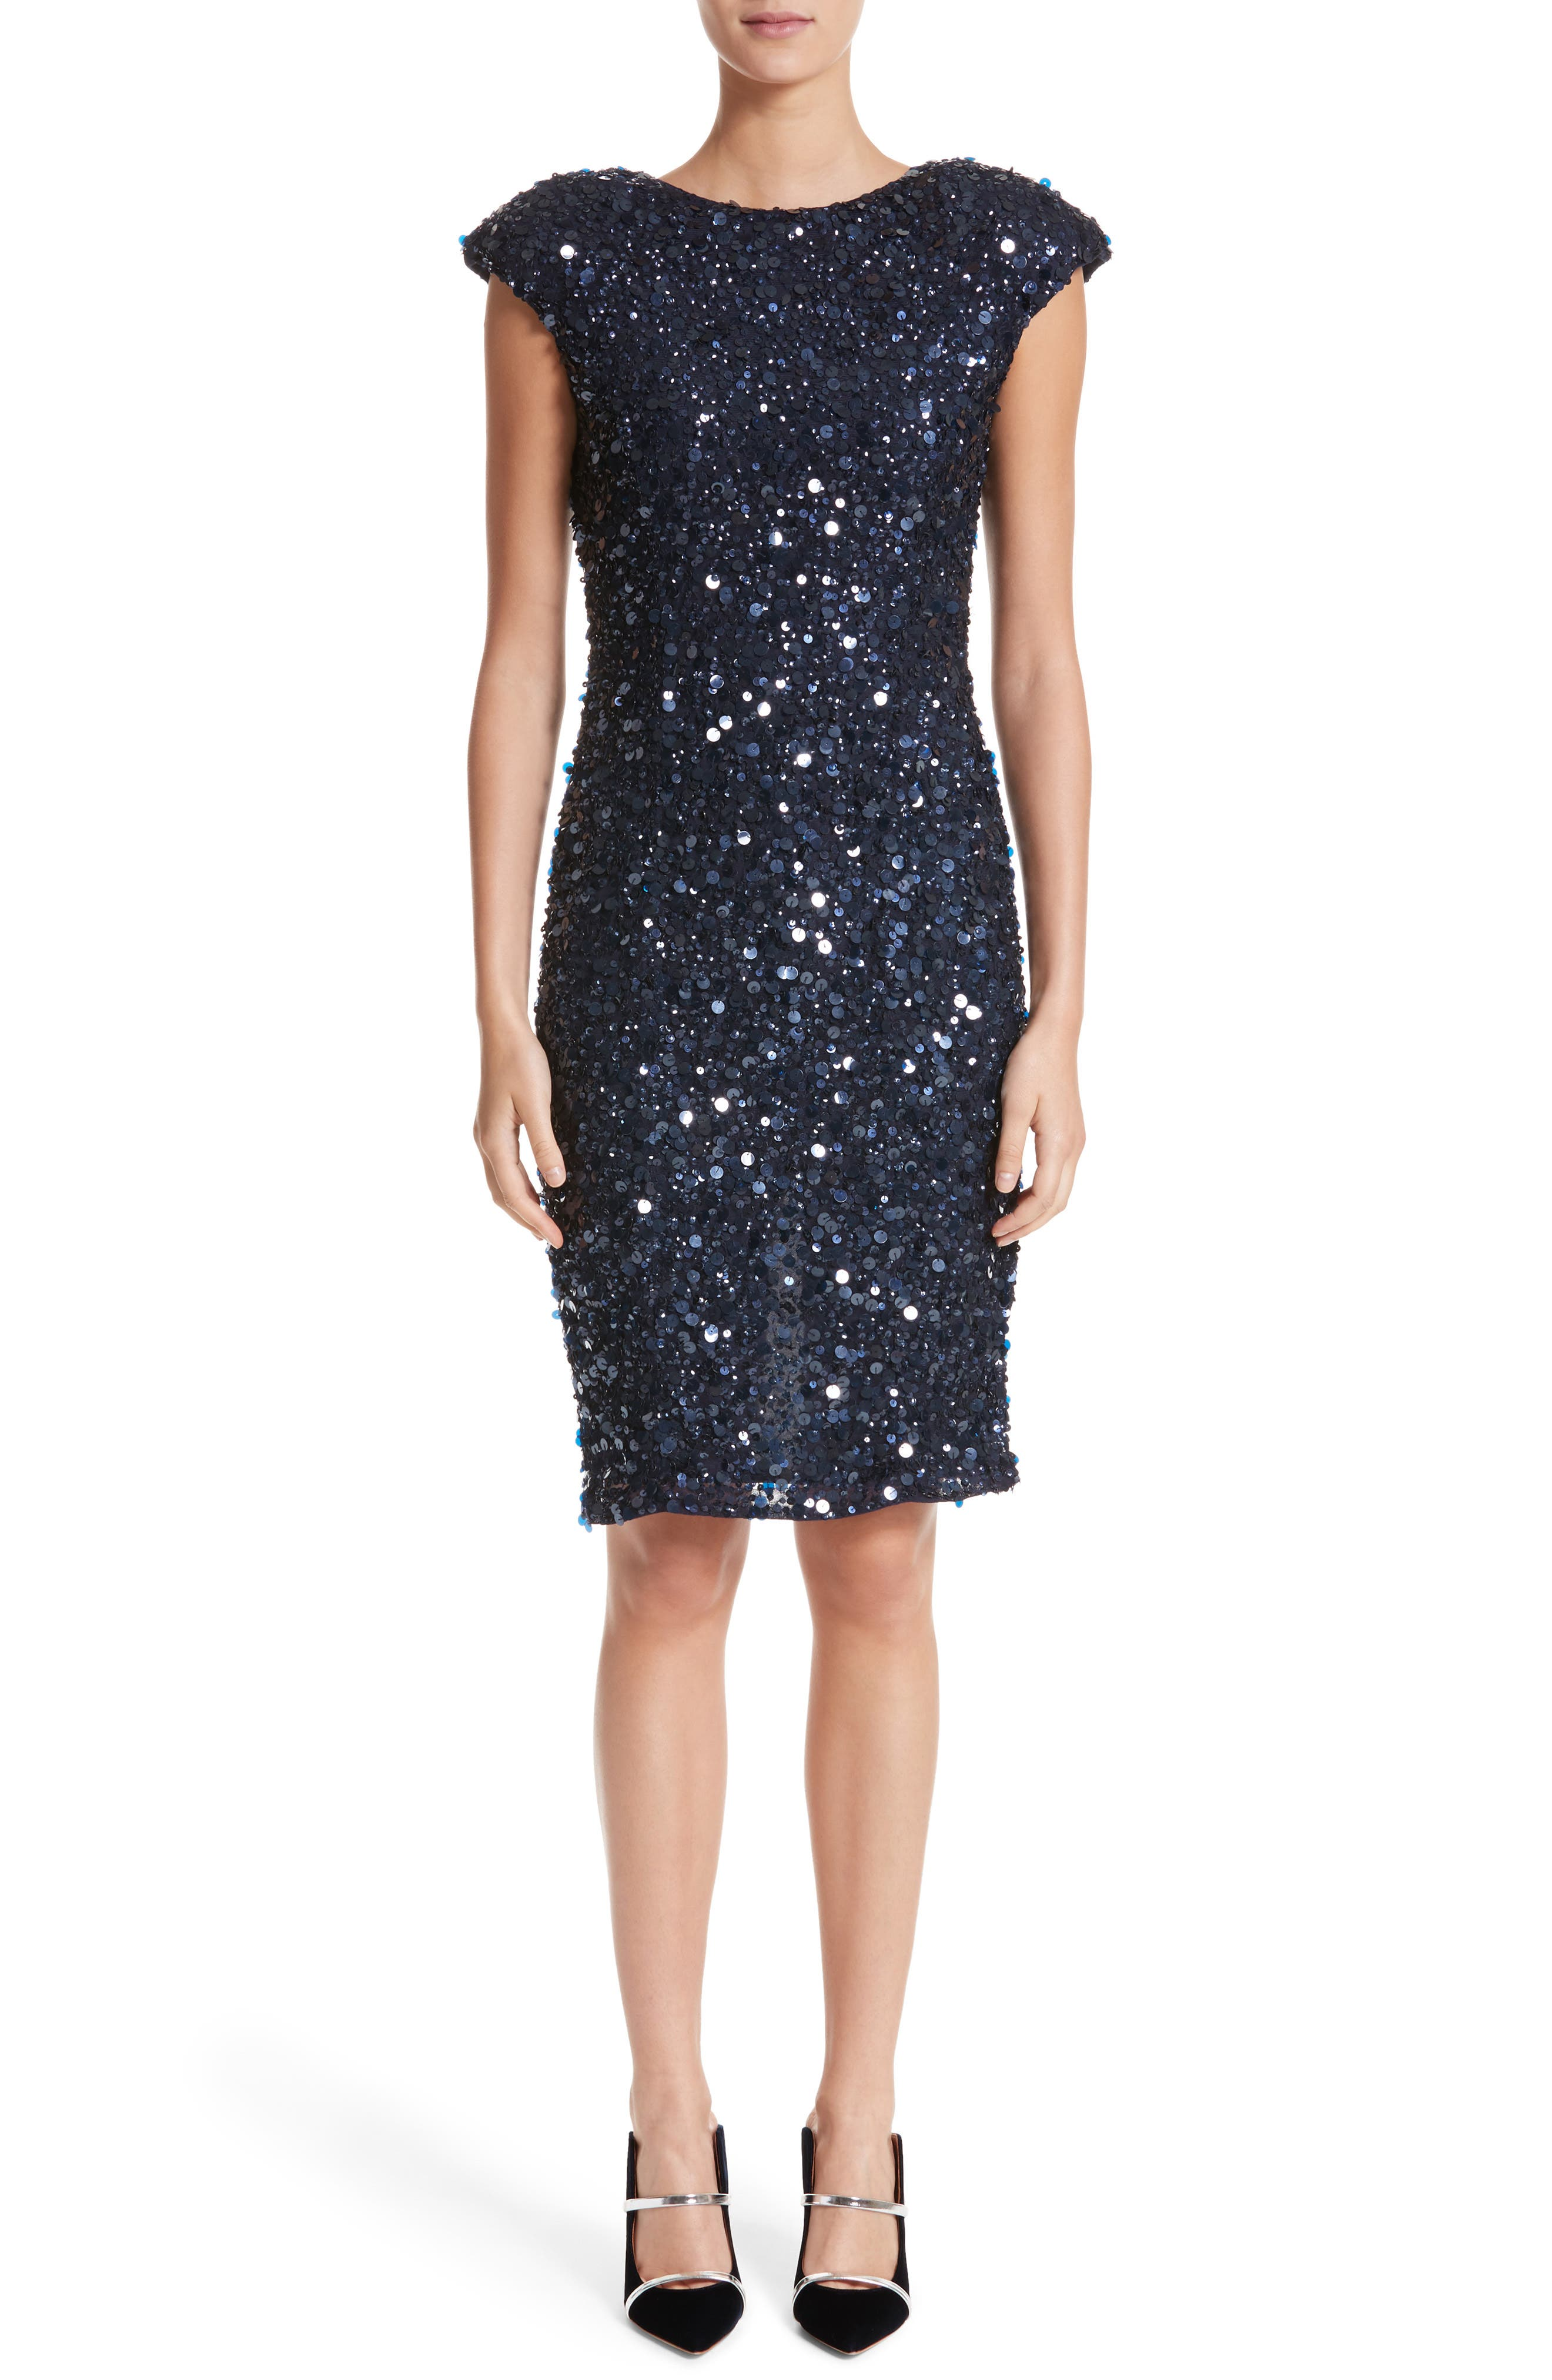 Hand Embellished Sequin Cocktail Dress,                             Main thumbnail 1, color,                             NAVY